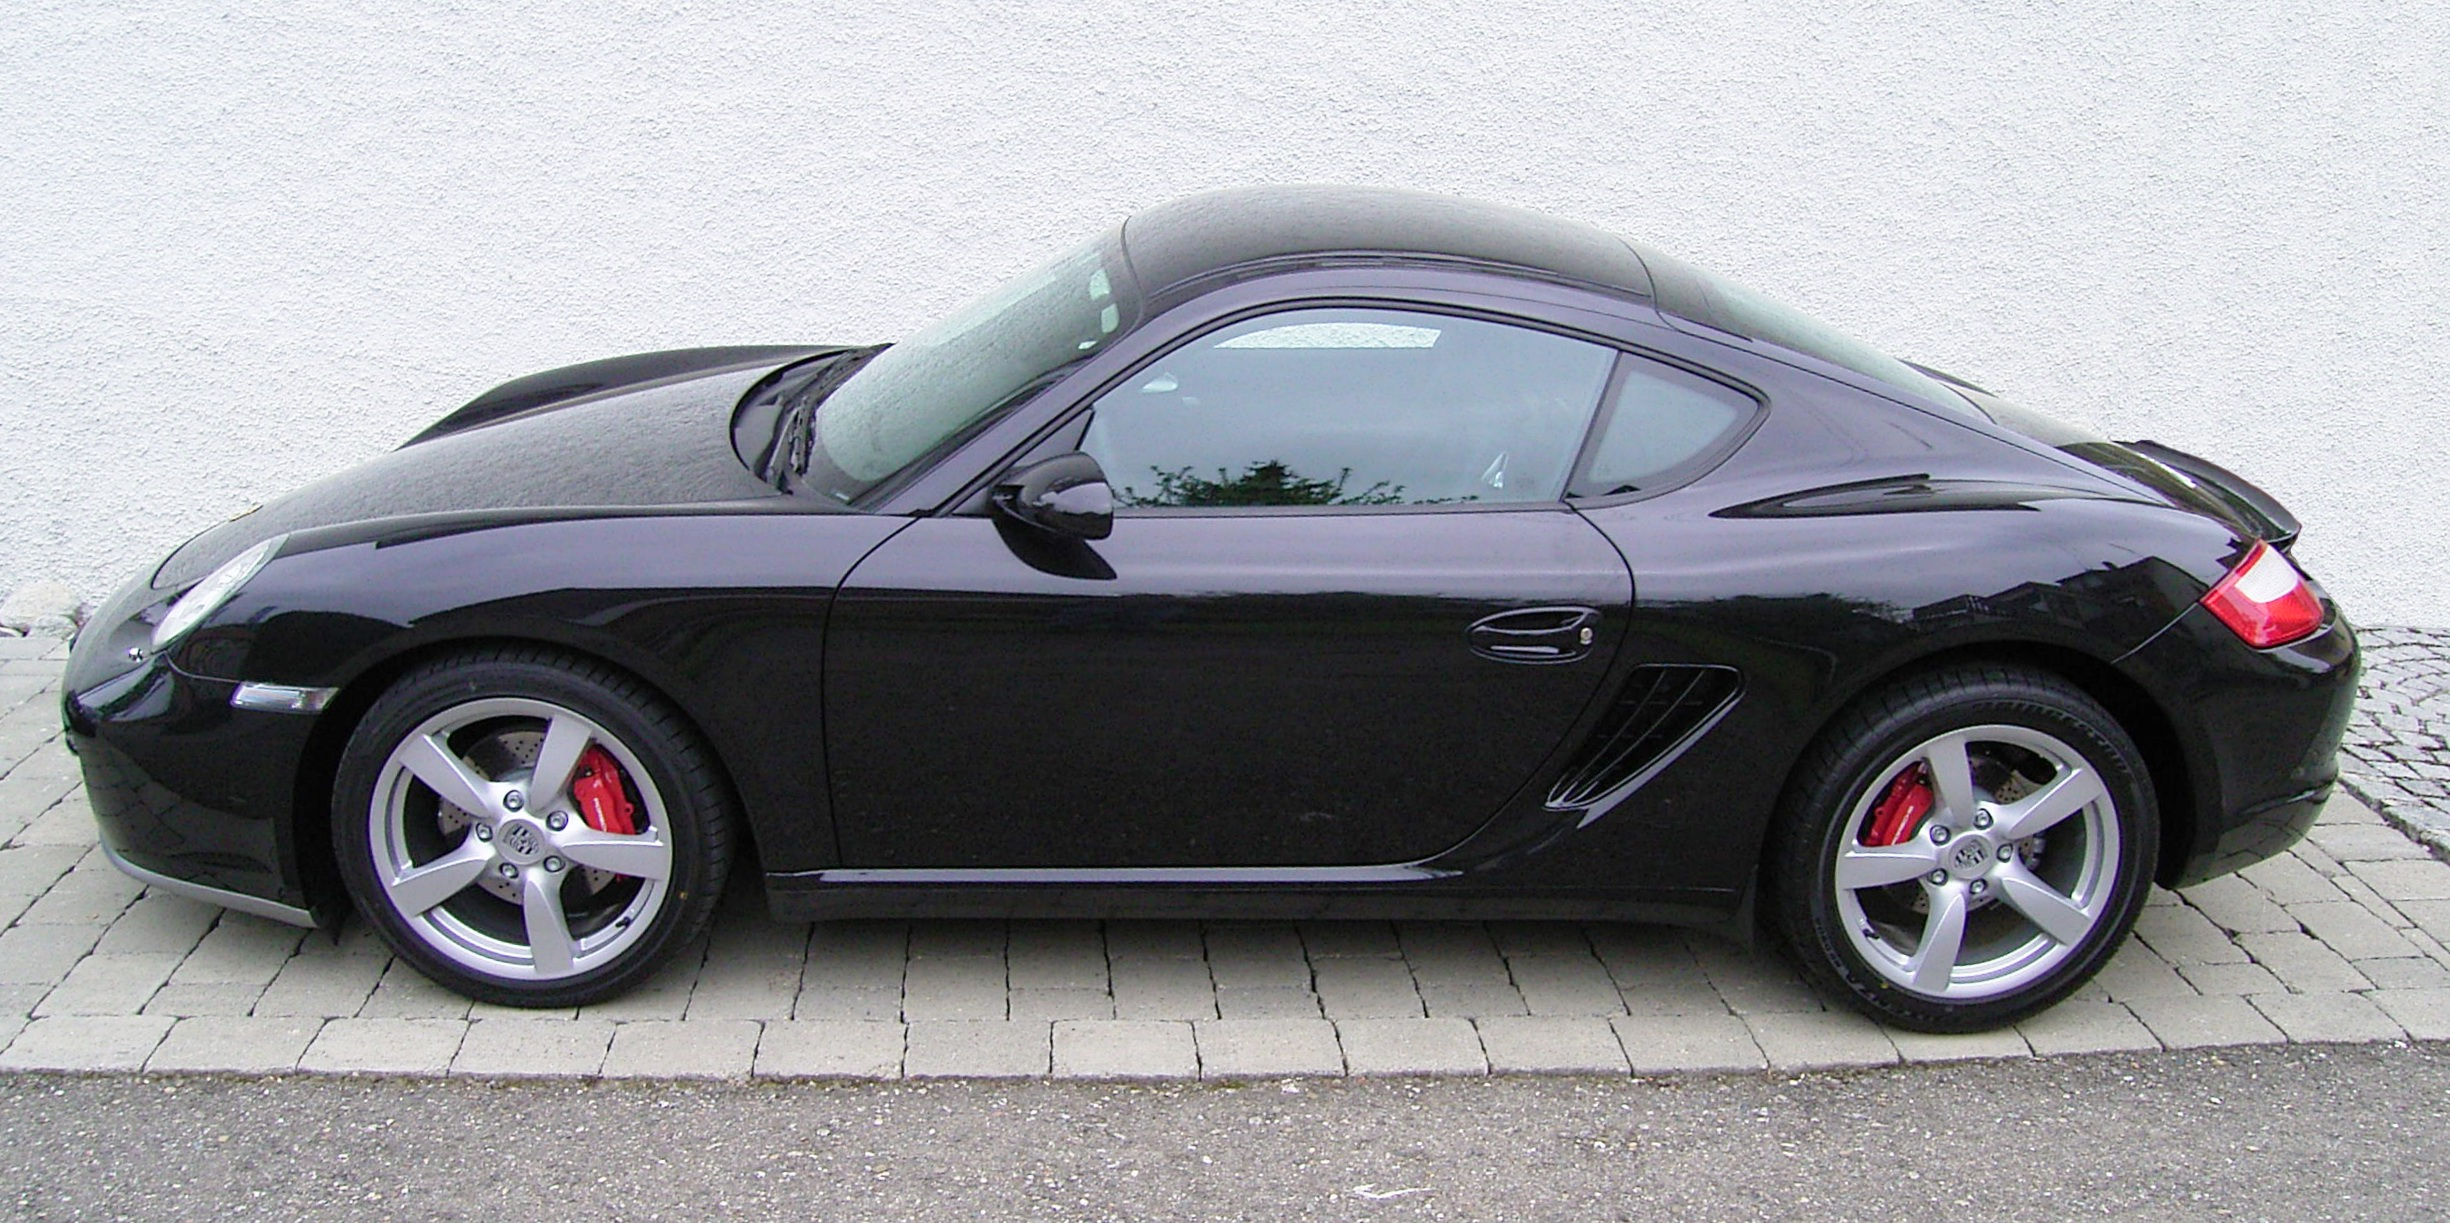 File:Porsche Cayman (Black) - Side.jpg - Wikimedia Commons